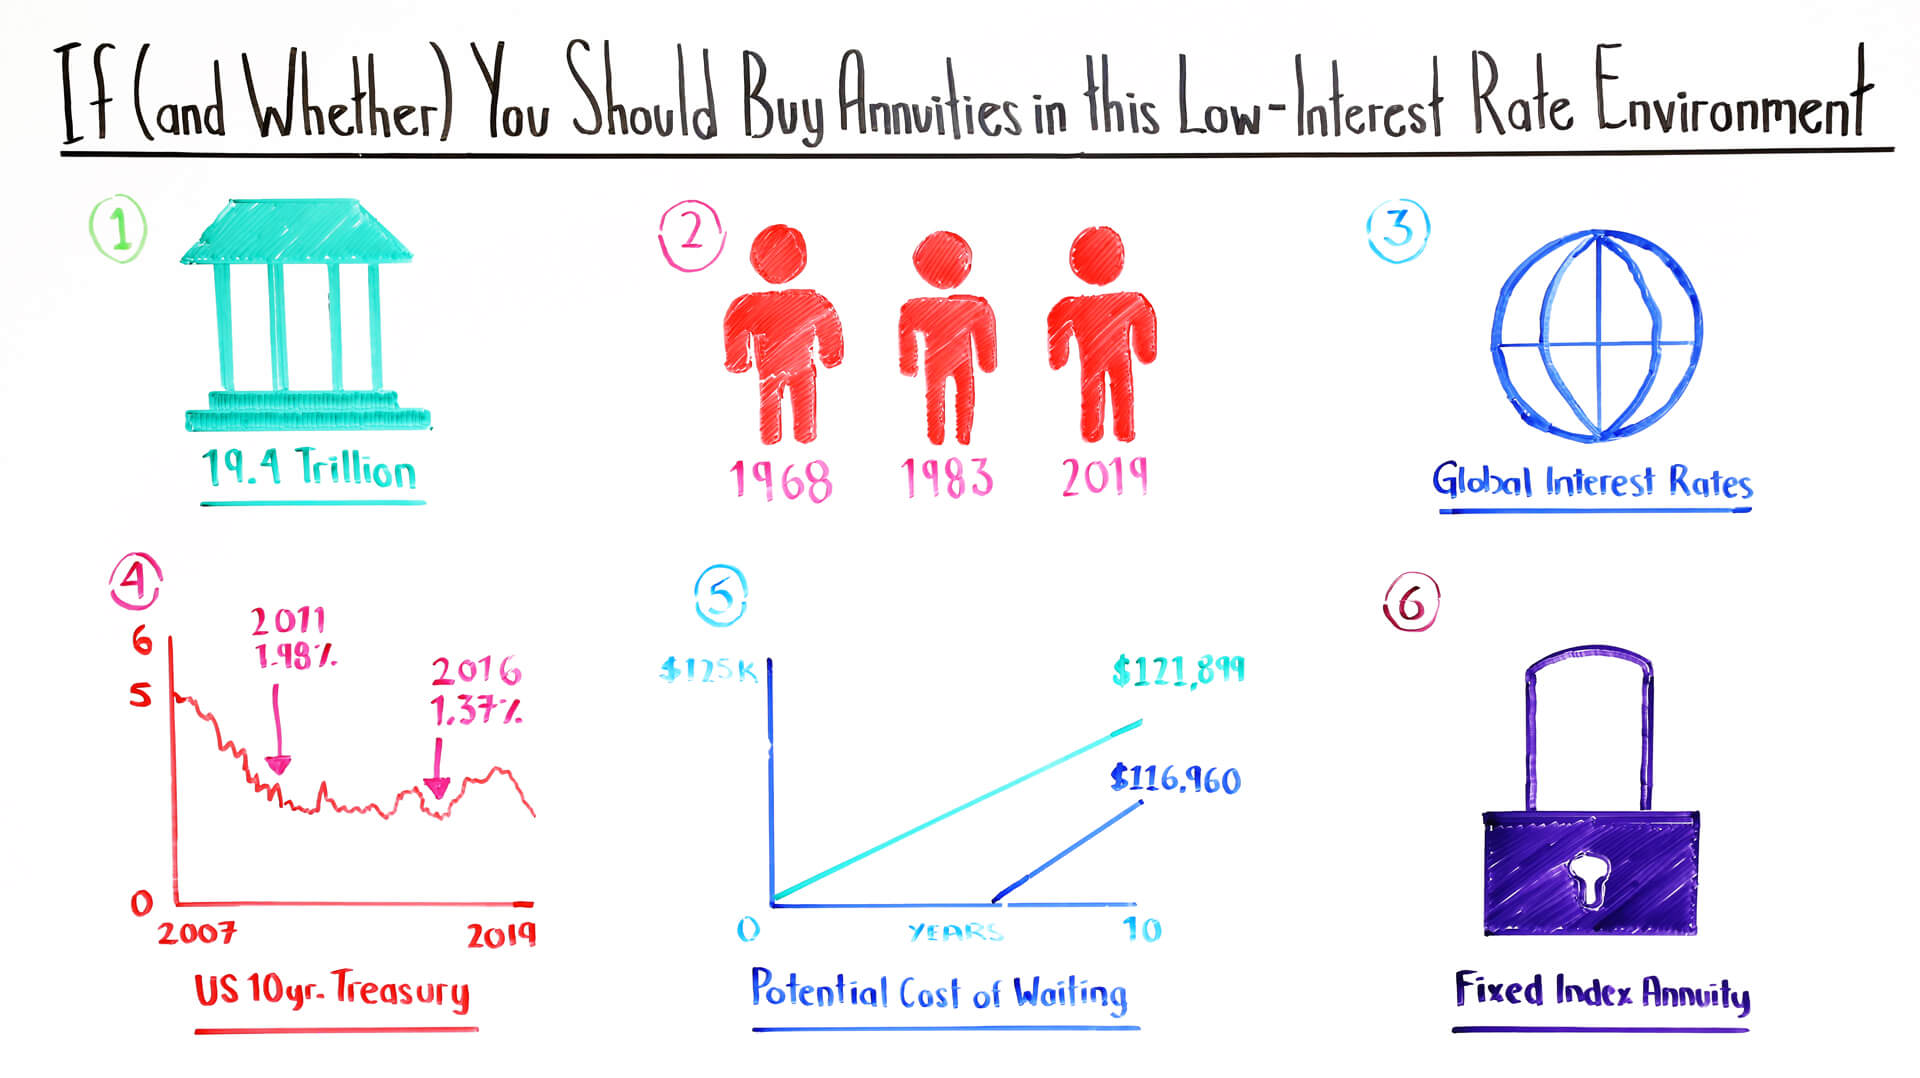 If (and Whether) You Should Buy Annuities in this Low-Interest Rate Environment